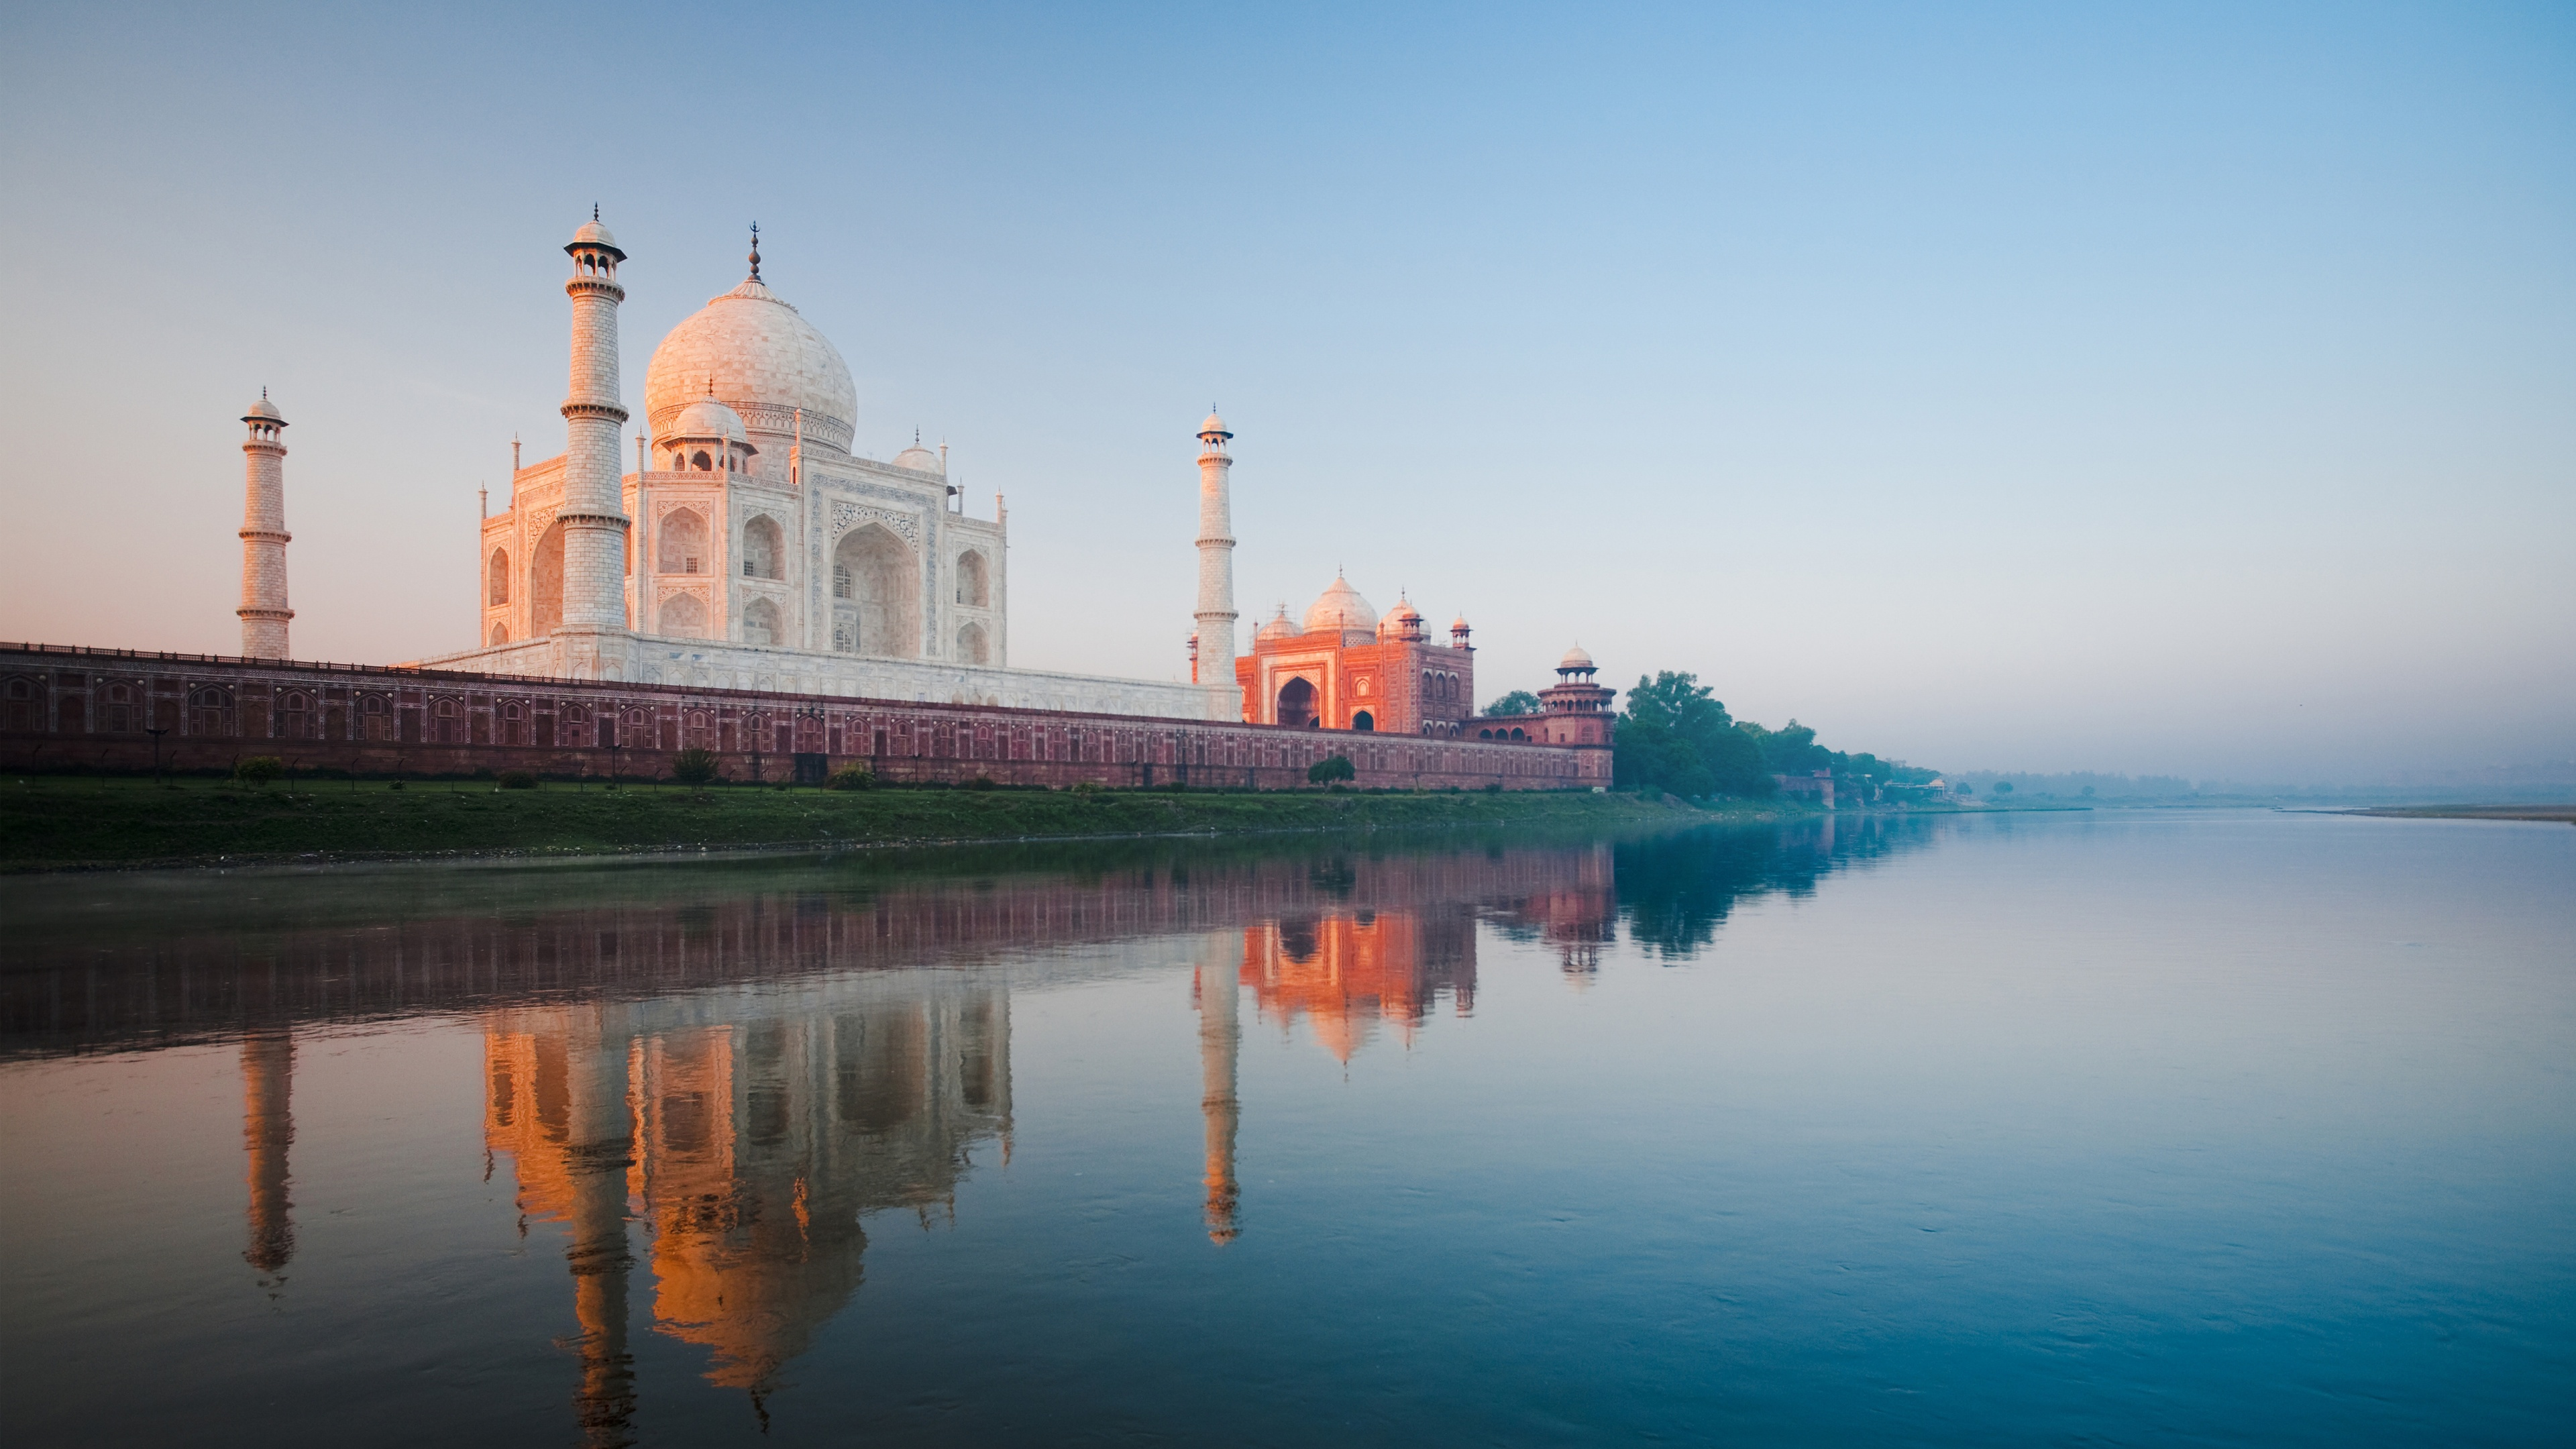 Taj Mahal Hd 4k 5k Wallpapers In Jpg Format For Free Download